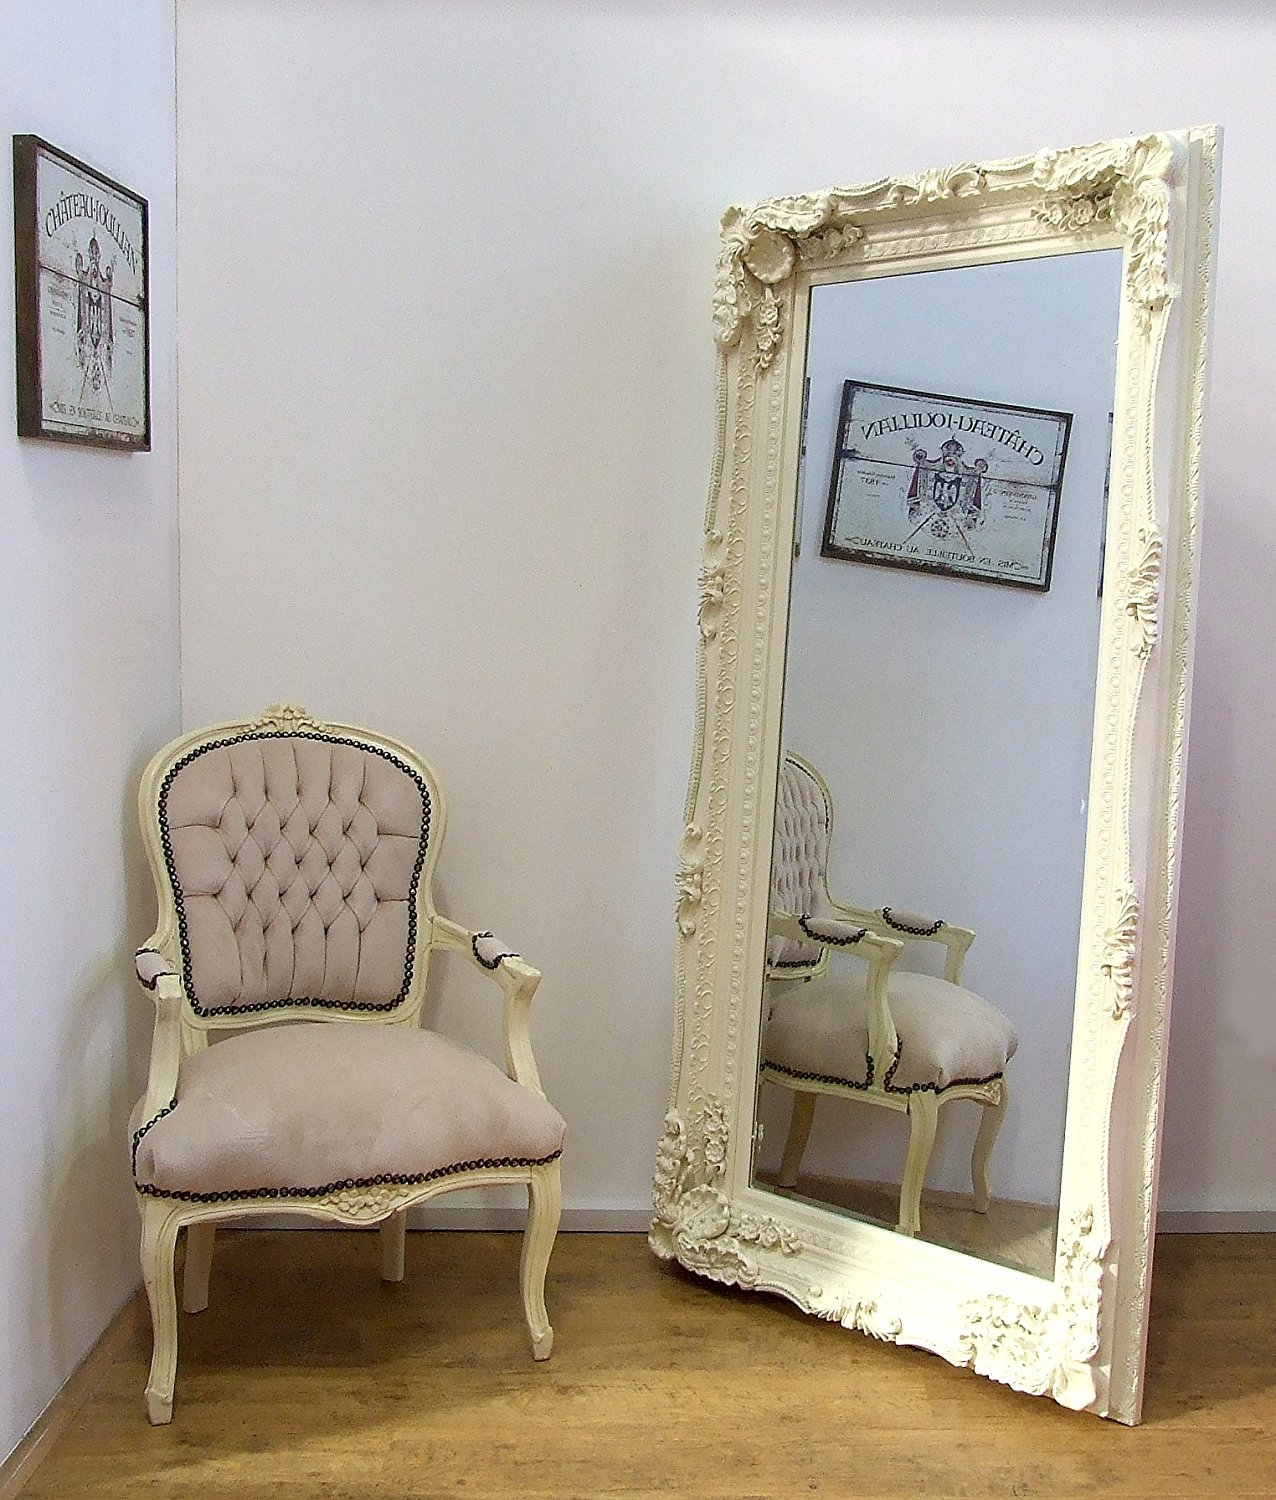 Beautiful Large Ornate Cream Ivory Wall Mirror 6ft X 3ft Gl42 Regarding Big Ornate Mirrors (Image 3 of 15)